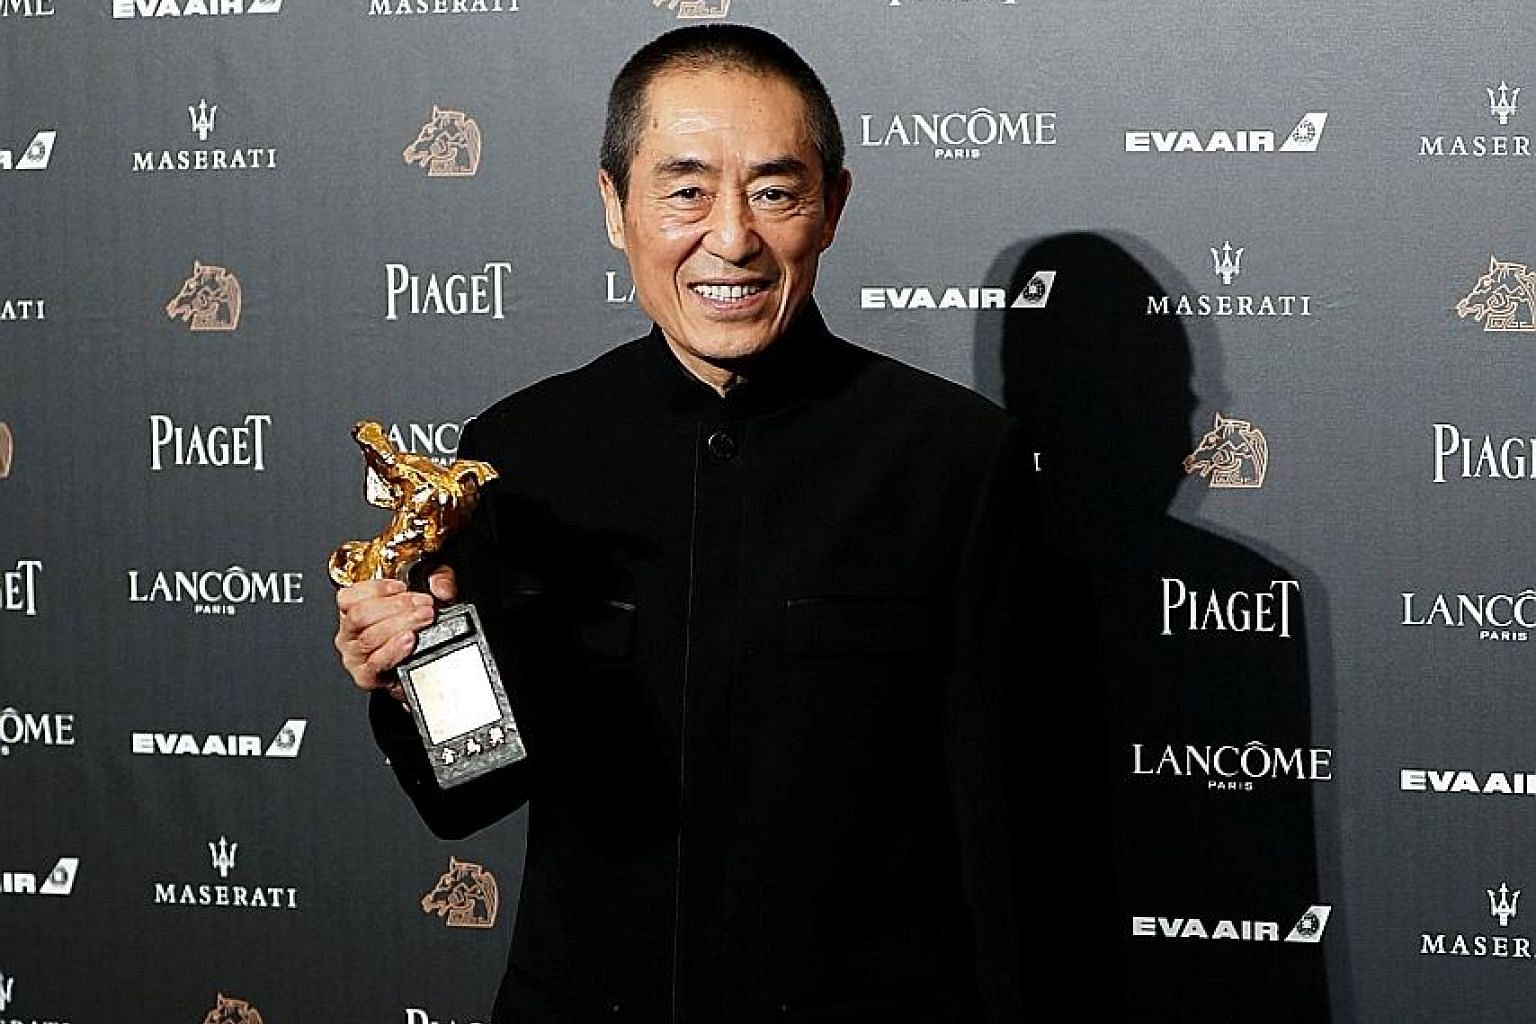 Chinese director Zhang Yimou's Golden Horse Award for Best Director, for Shadow, is the first in his decades-long career - and, remarkably, is also his first nomination for Best Director.